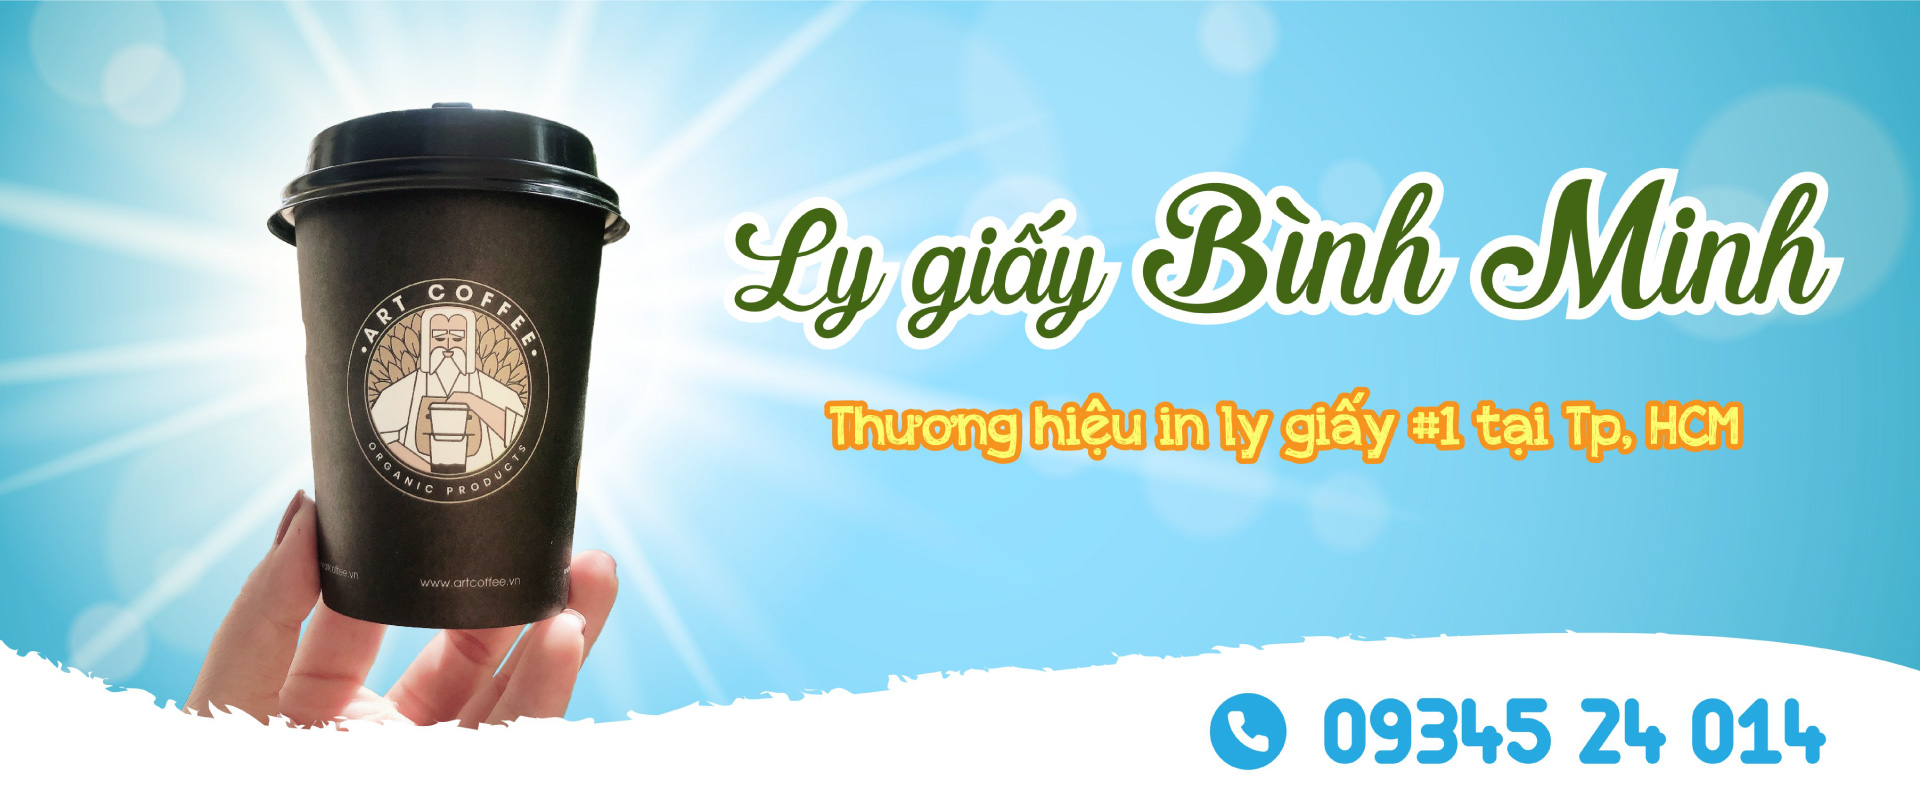 in-ly-giay-binh-minh-tphcm-cao-cap